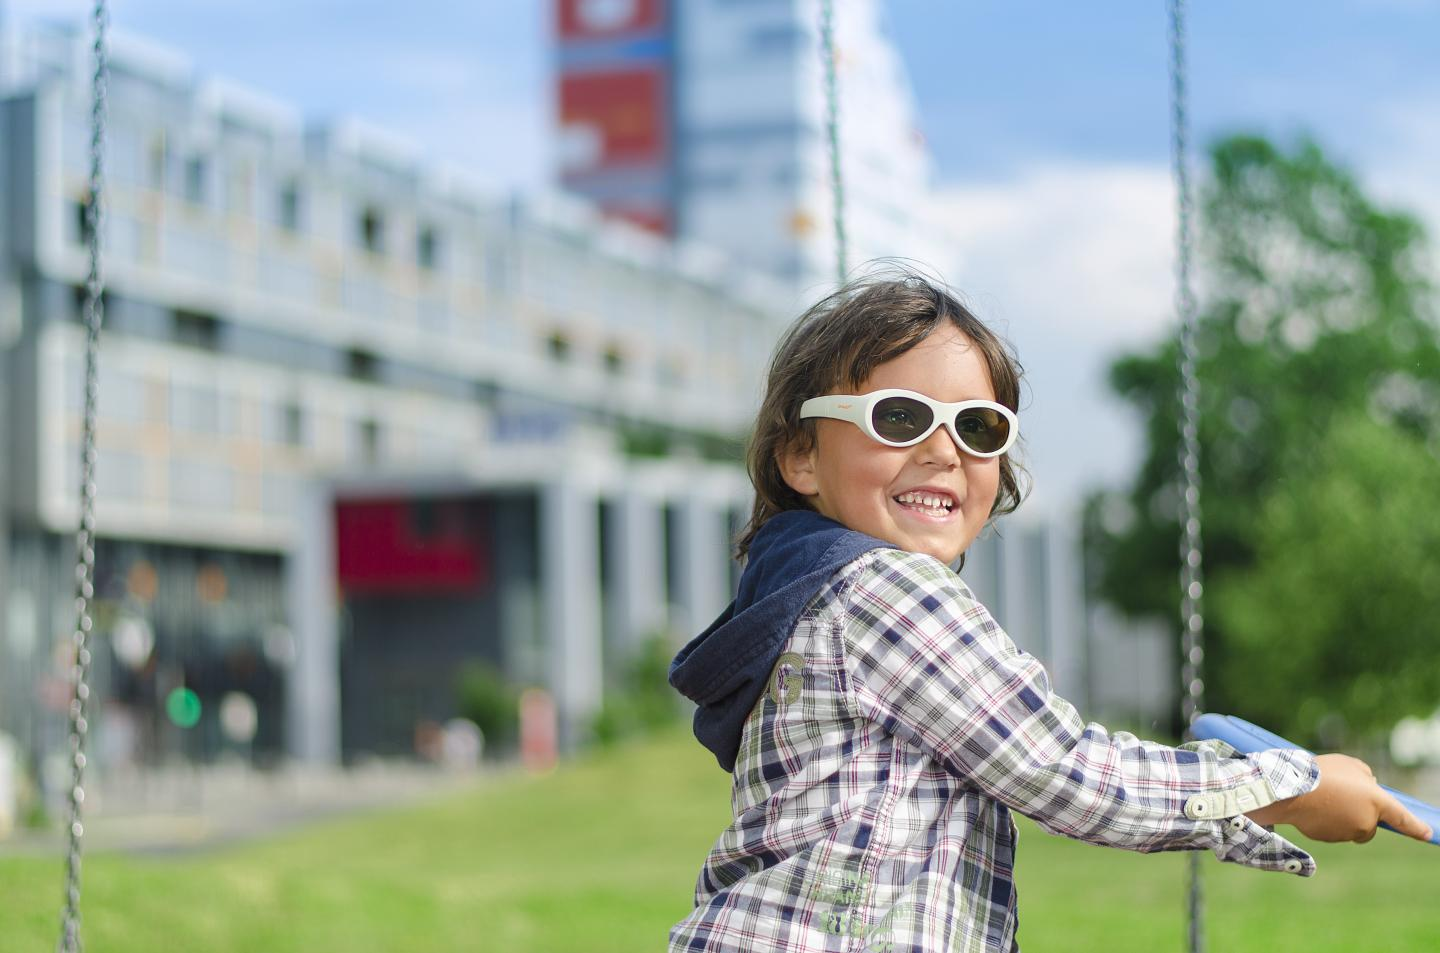 First study of its kind illustrates myopia prevalence in Canadian children